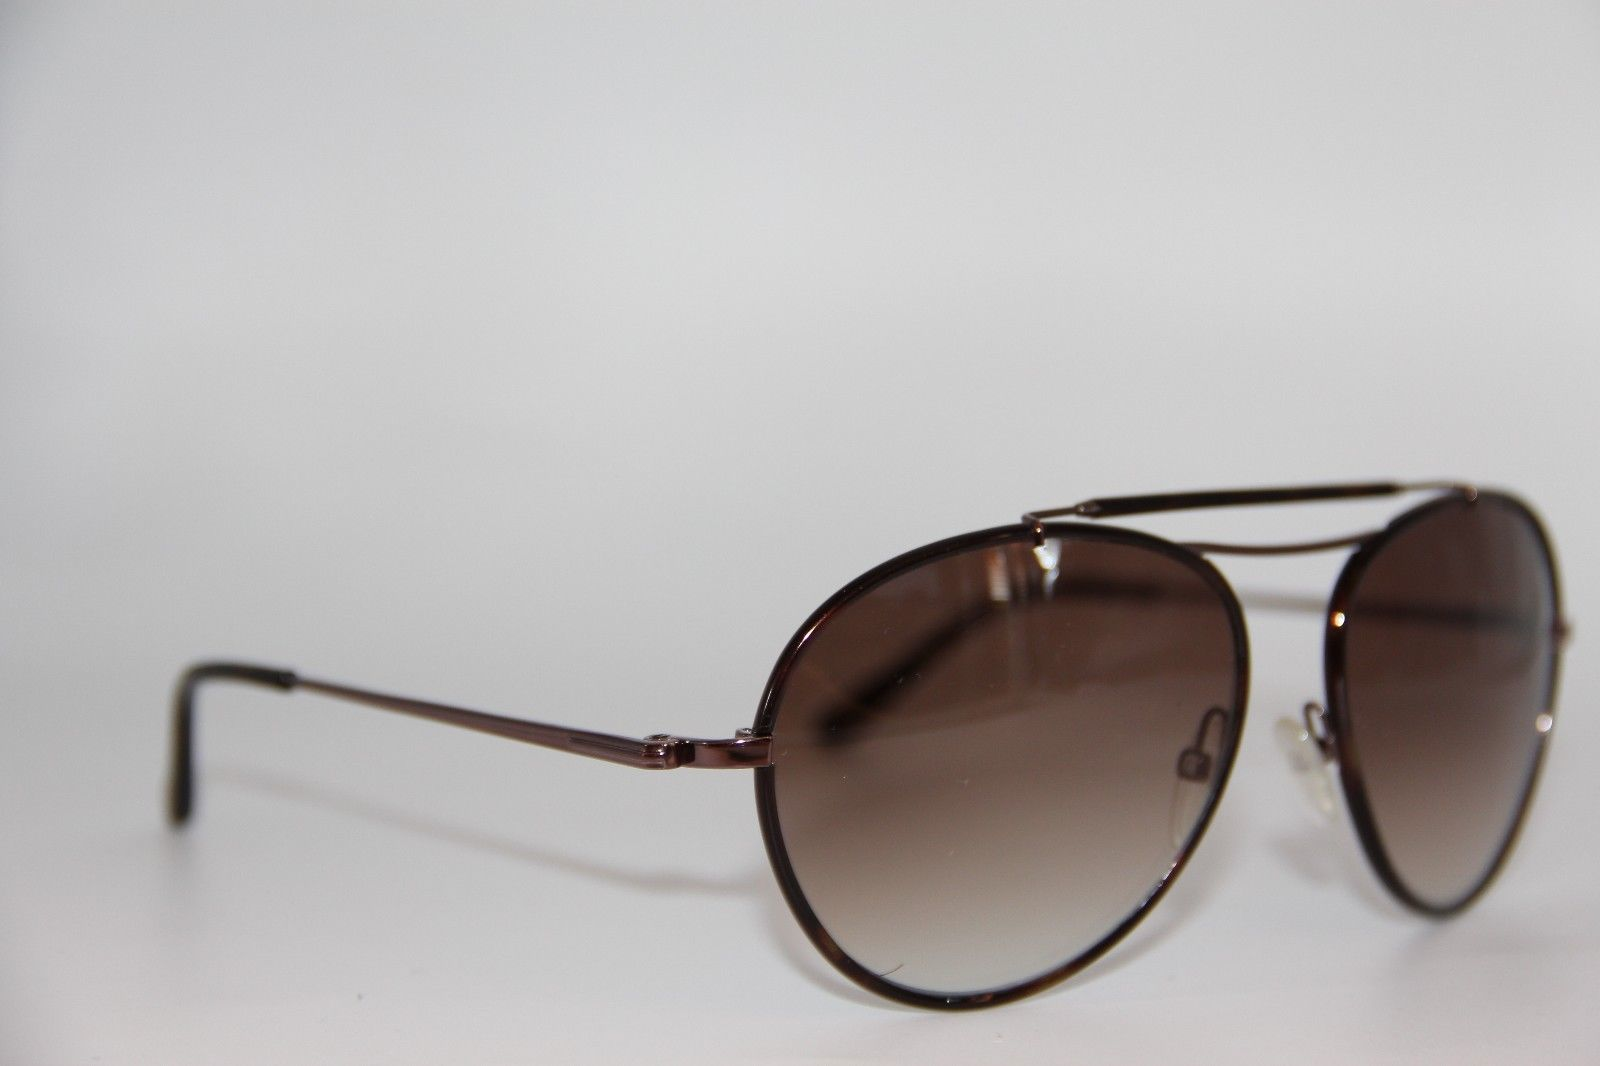 9a29376644 New Tom Ford Tf 247 10F Burke Havana and 50 similar items